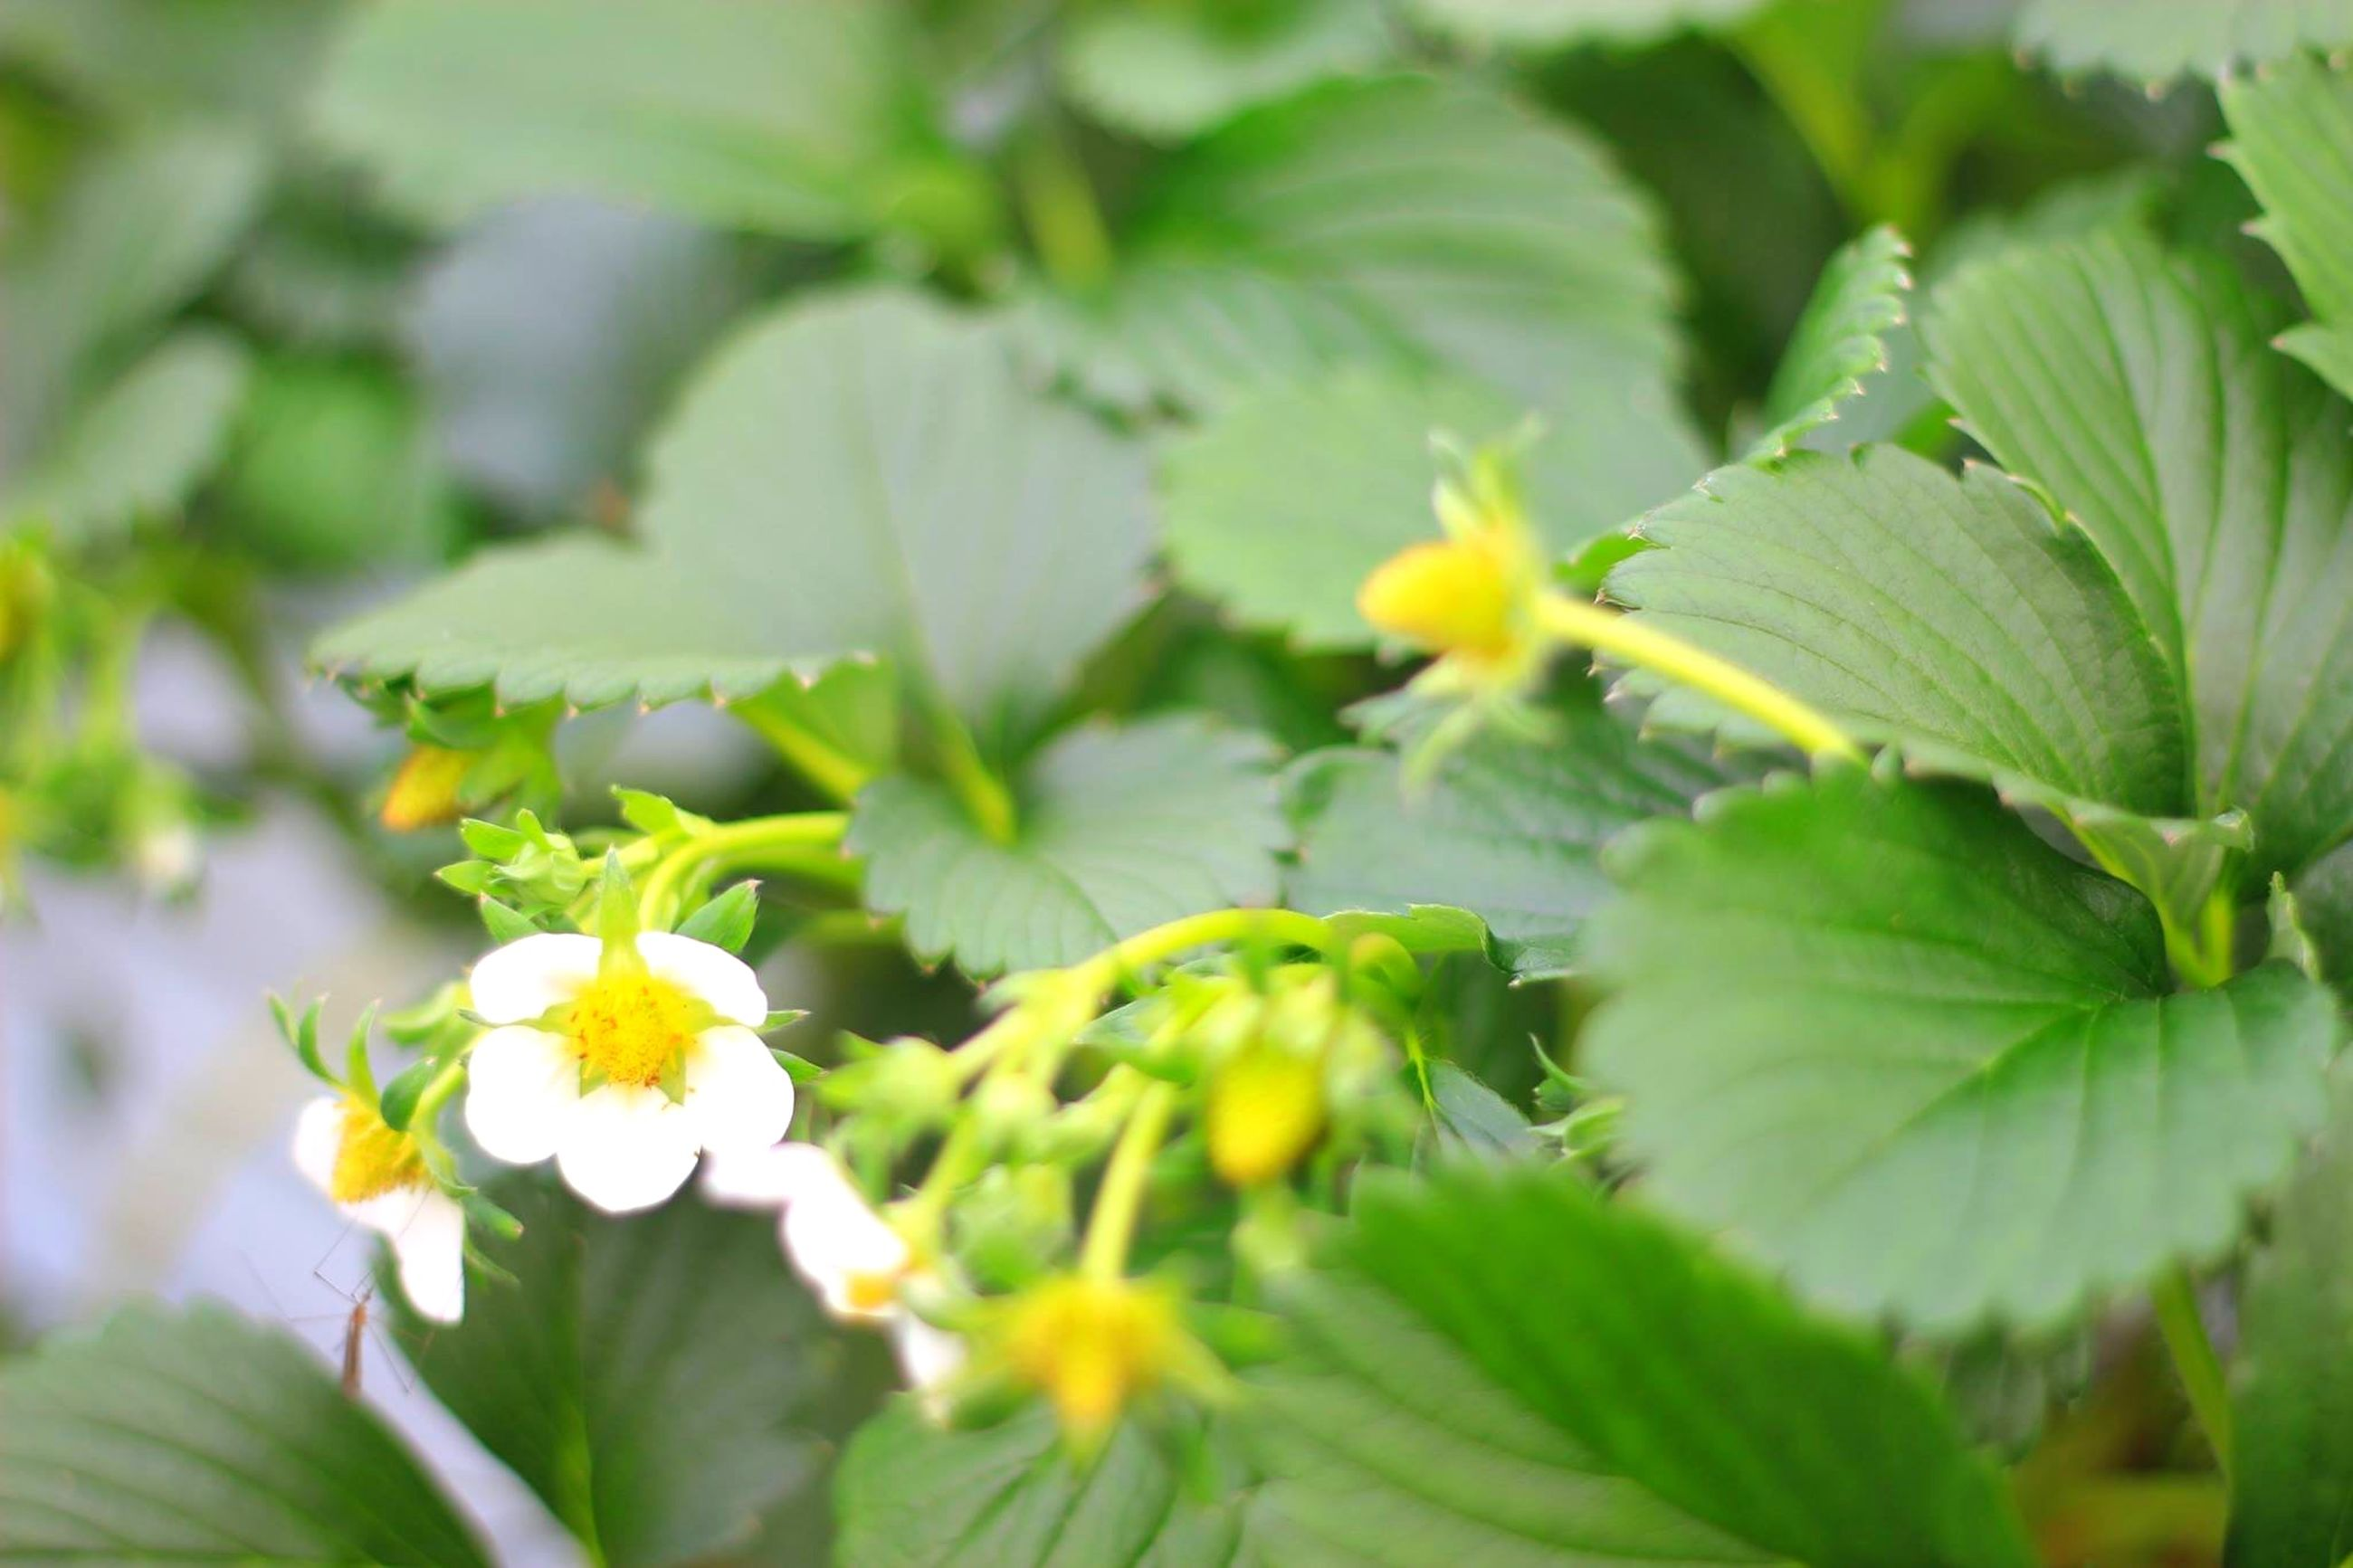 flower, freshness, growth, petal, fragility, leaf, flower head, beauty in nature, focus on foreground, blooming, plant, nature, close-up, yellow, green color, white color, in bloom, outdoors, park - man made space, day